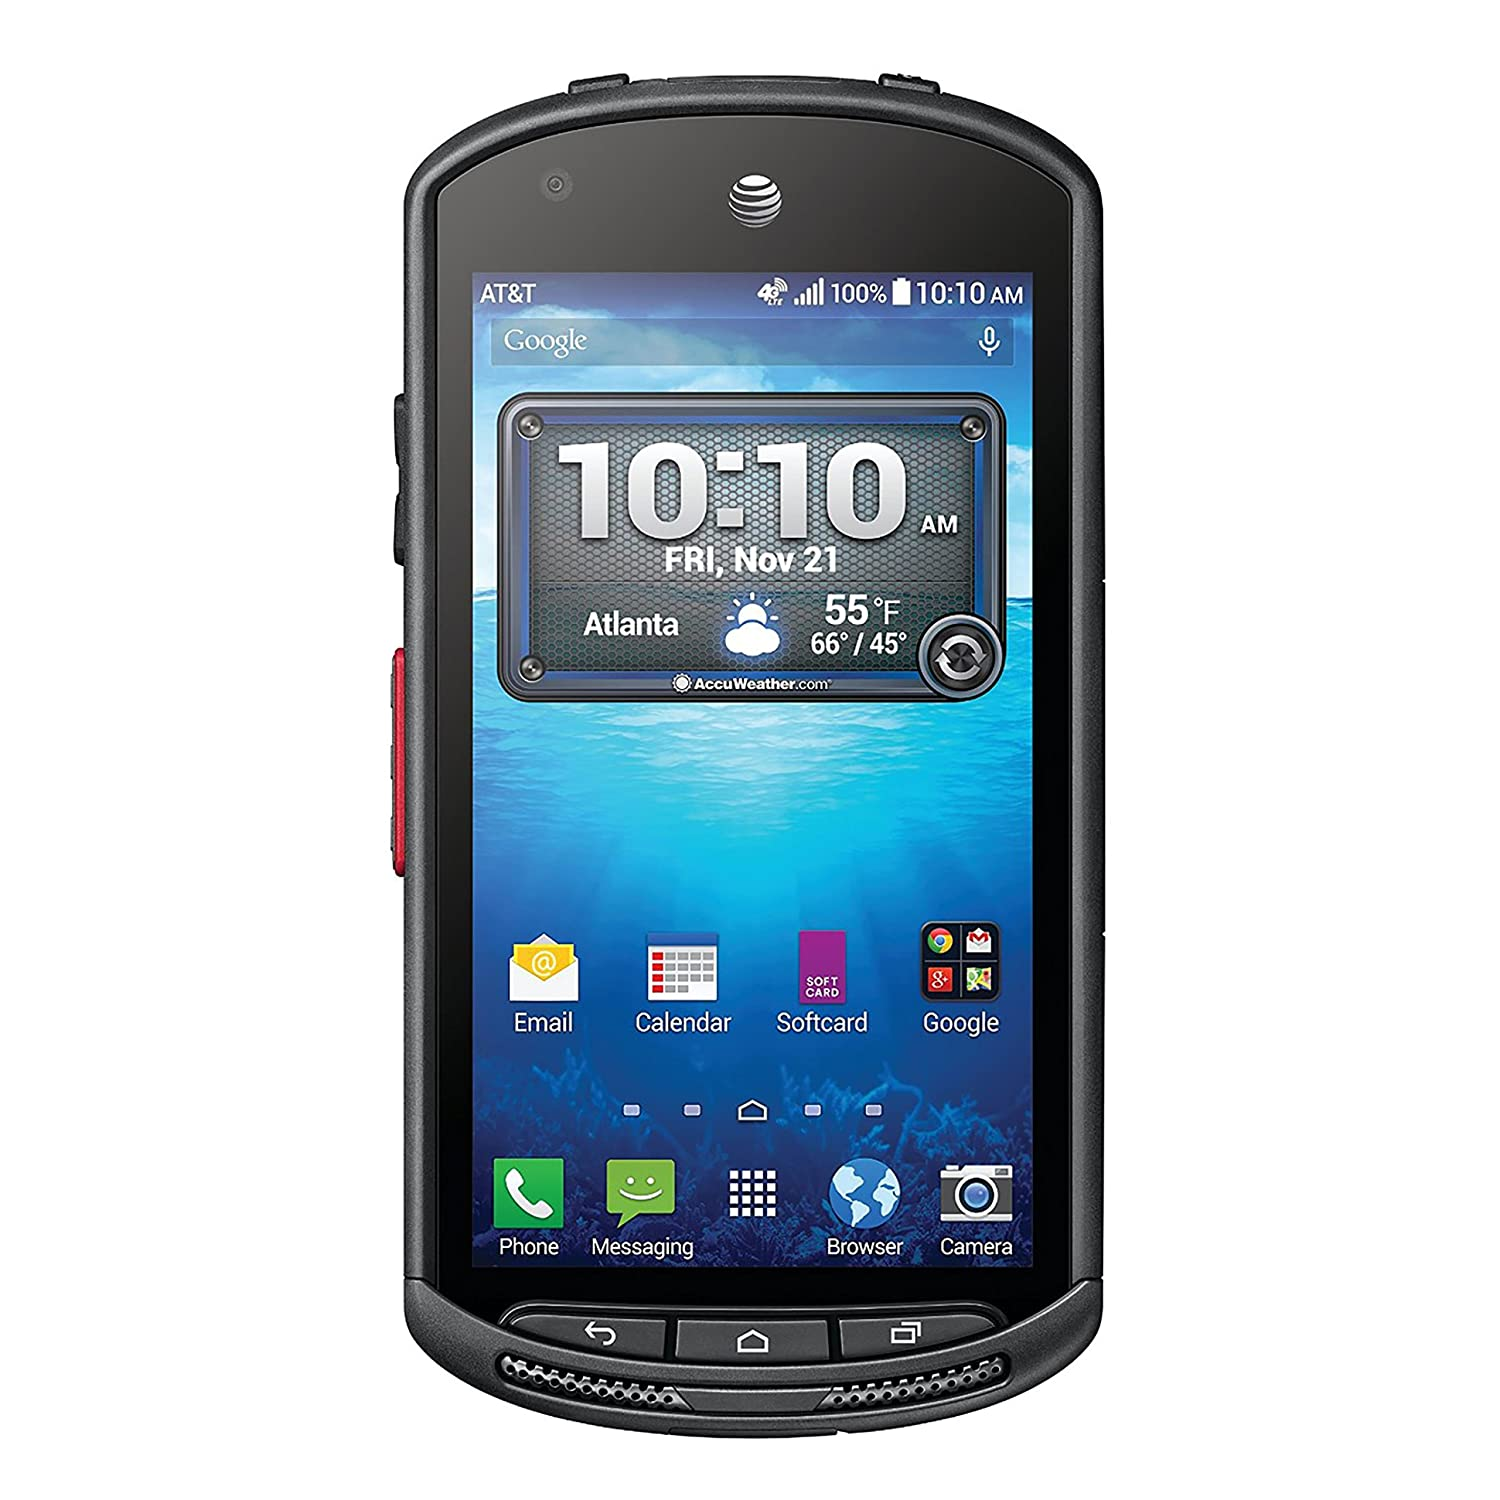 Amazon kyocera duraforce e6560 16gb unlocked gsm 4g lte amazon kyocera duraforce e6560 16gb unlocked gsm 4g lte military grade smartphone w 8mp camera black cell phones accessories fandeluxe Images